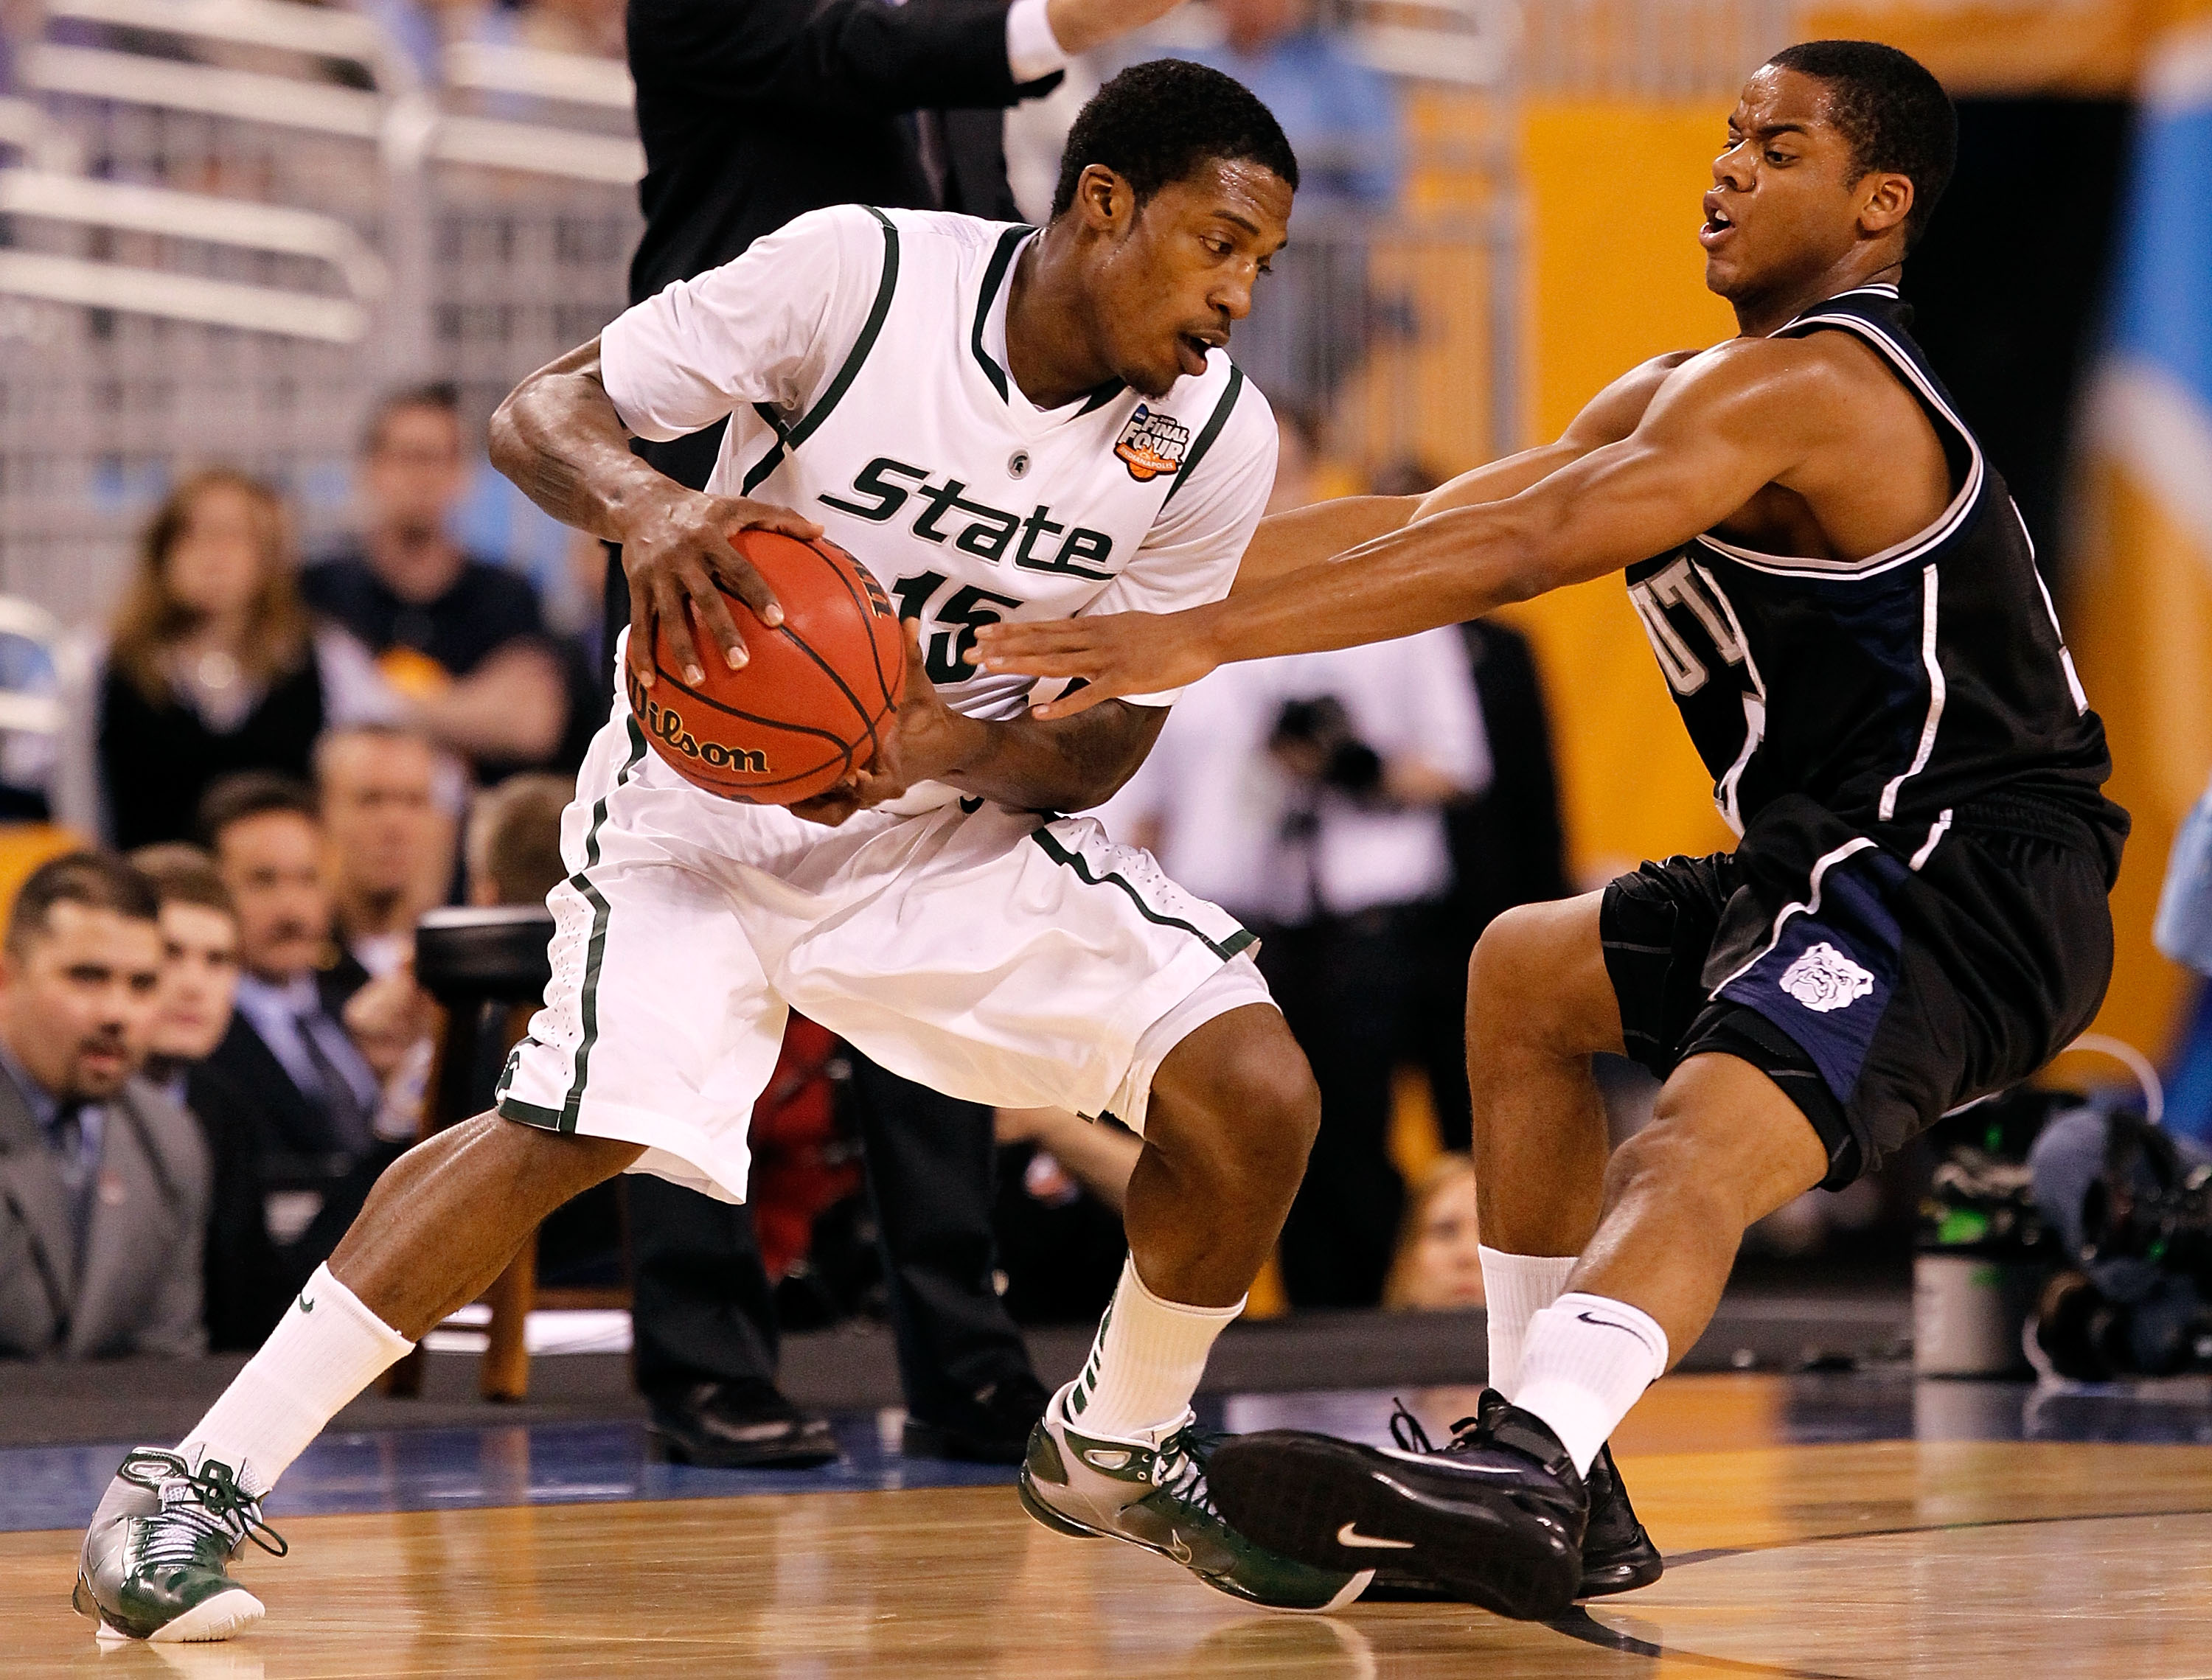 INDIANAPOLIS - APRIL 03:  Durrell Summers #15 of the Michigan State Spartans looks to drive against Ronald Nored #5 of the Butler Bulldogs during the National Semifinal game of the 2010 NCAA Division I Men's Basketball Championship on April 3, 2010 in Ind